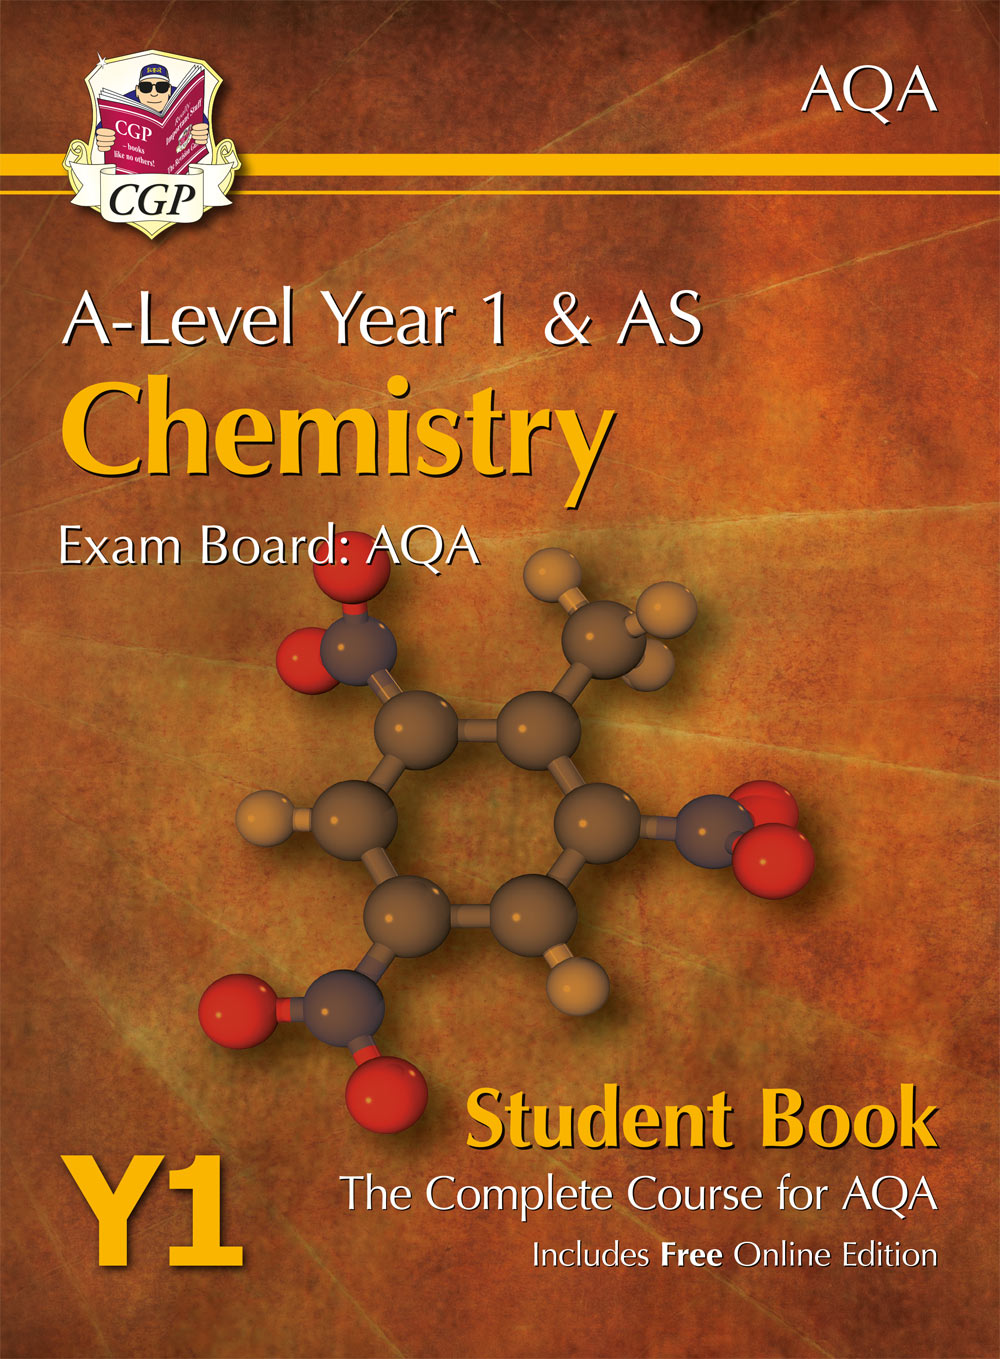 CATB53 - A-Level Chemistry for AQA: Year 1 & AS Student Book